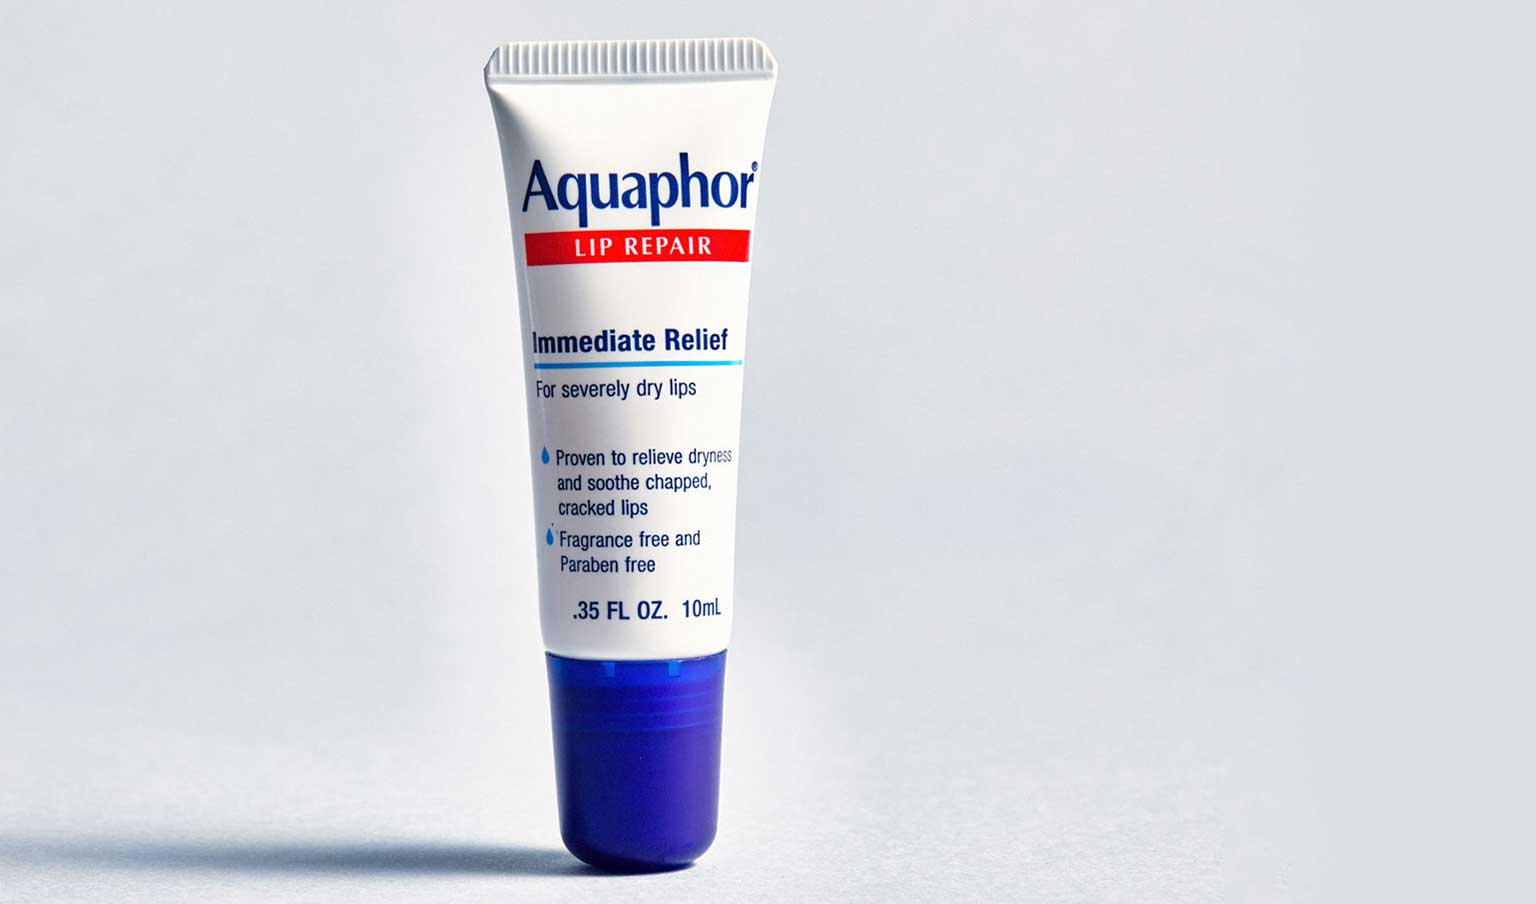 tube of Aquaphor lip repair on light grey background